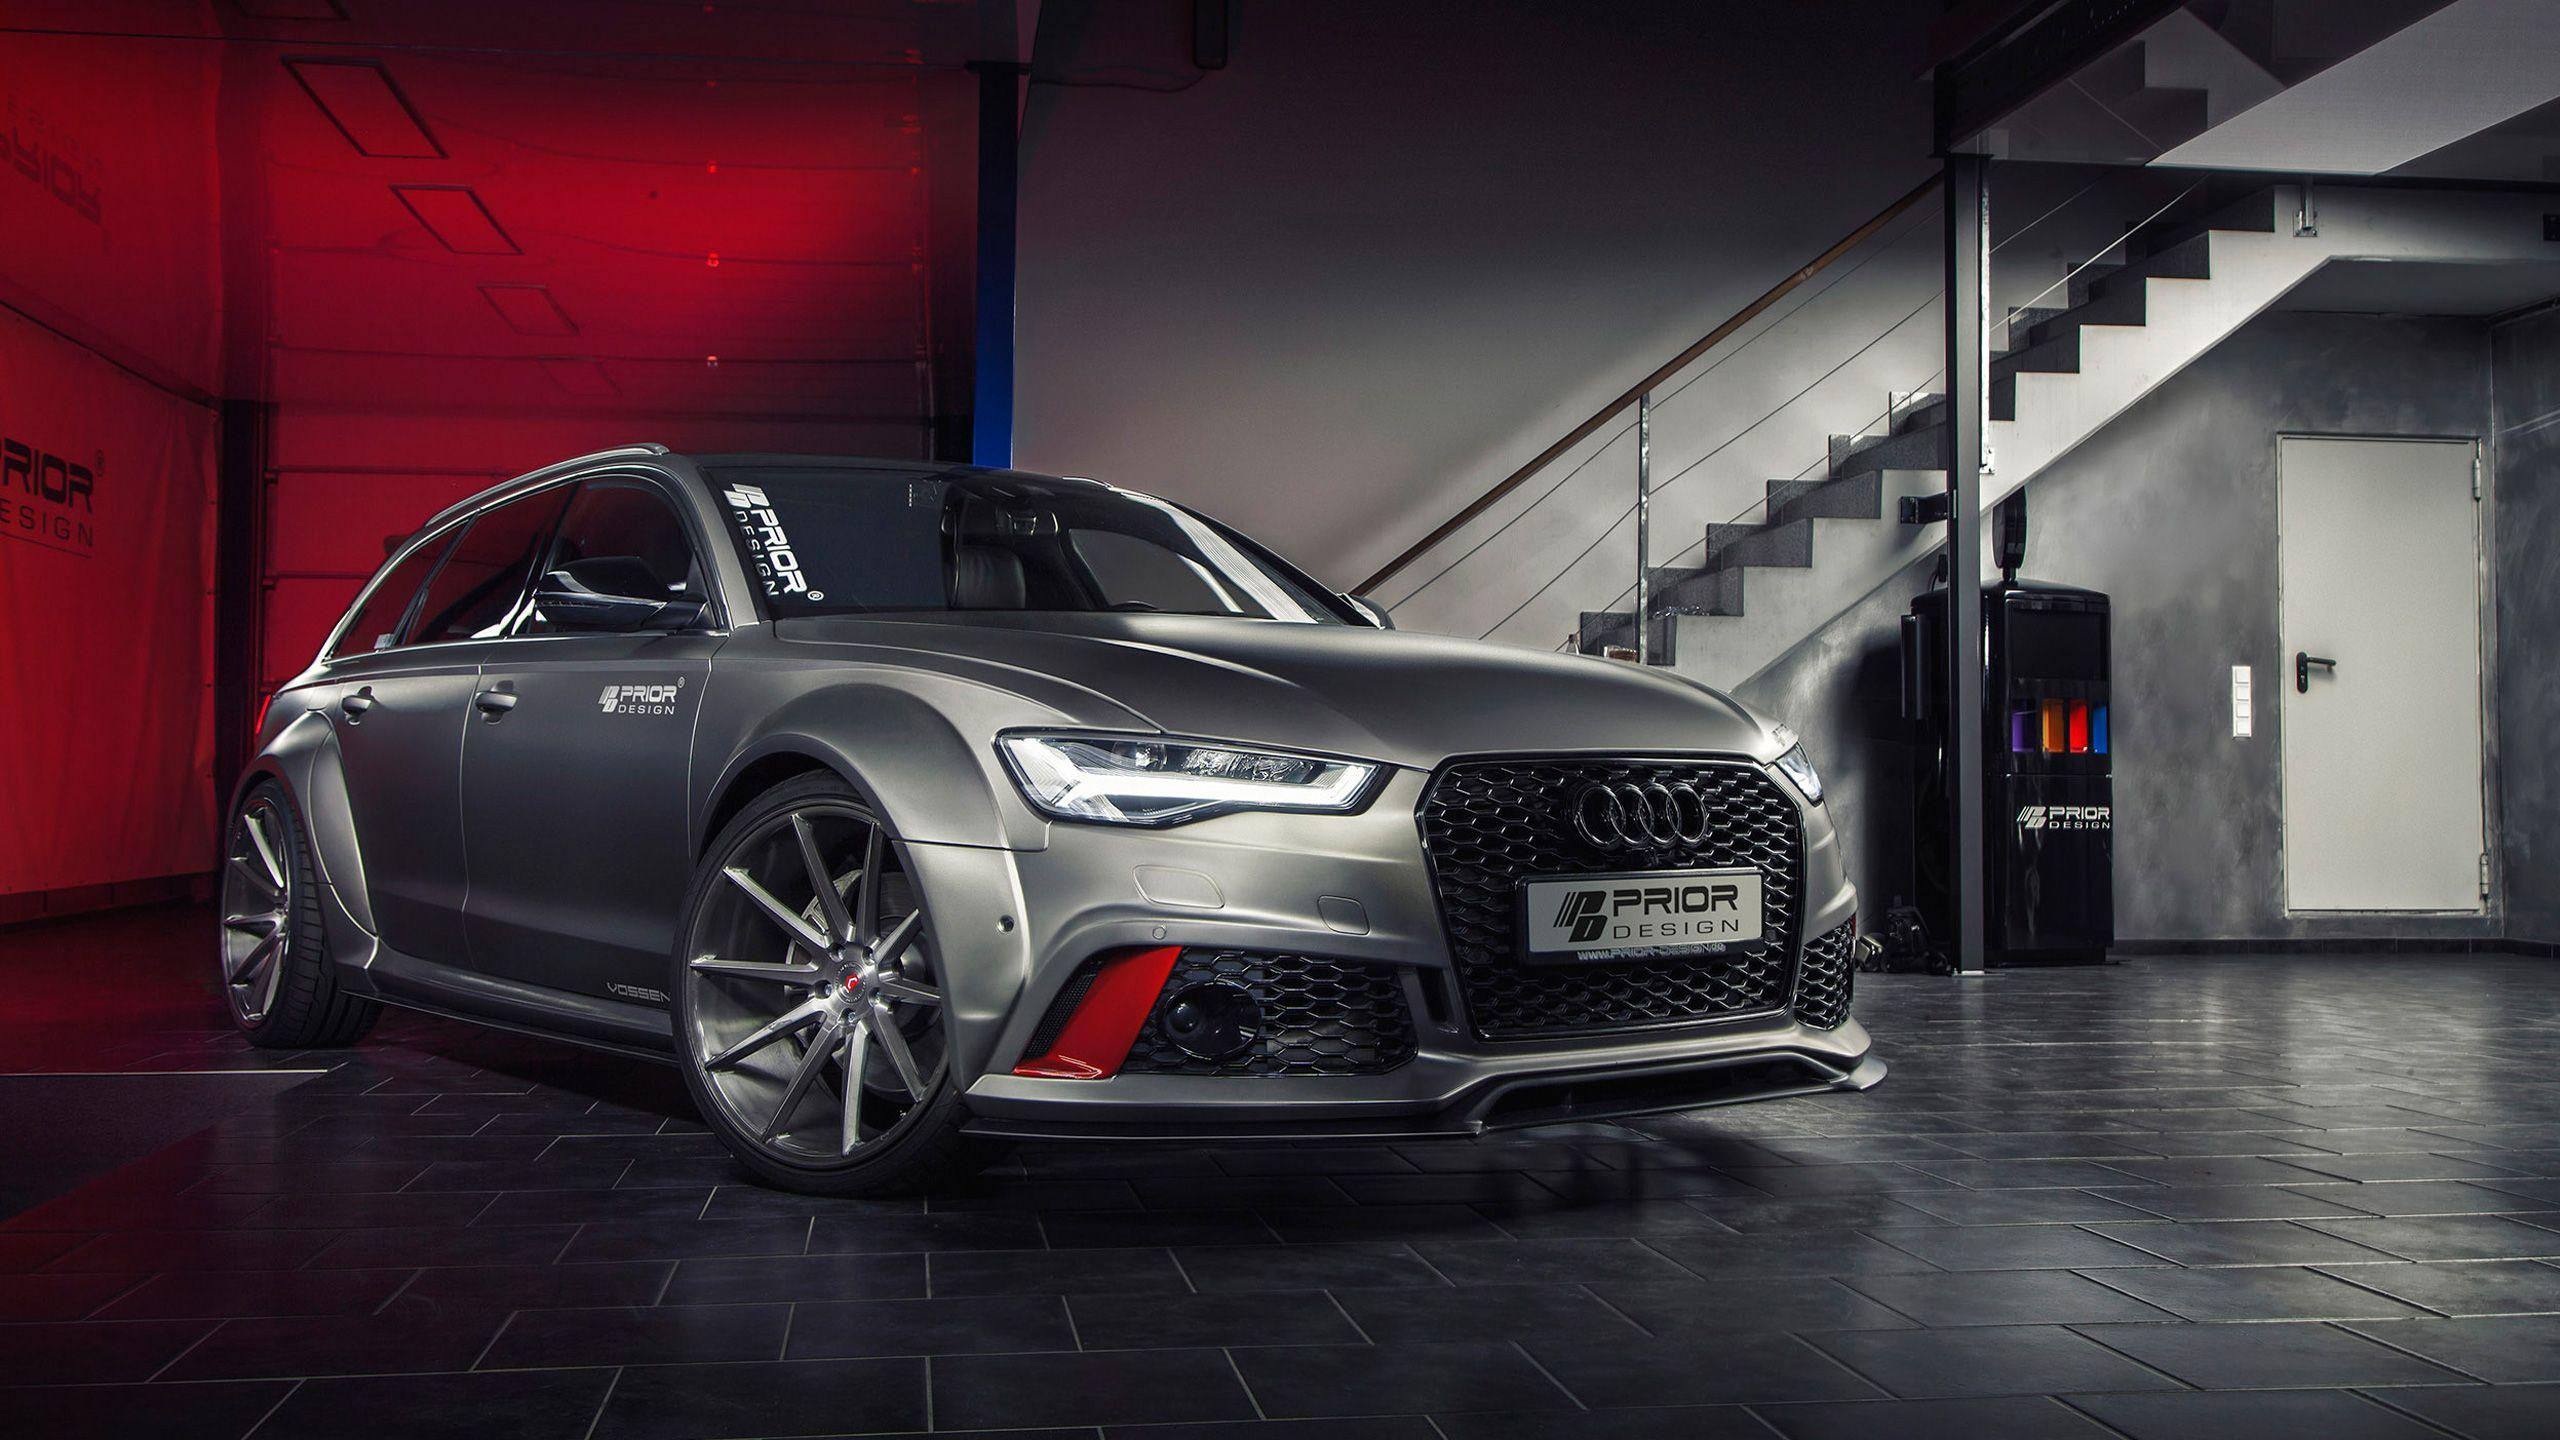 Audi Rs6 Wallpapers Top Free Audi Rs6 Backgrounds Wallpaperaccess